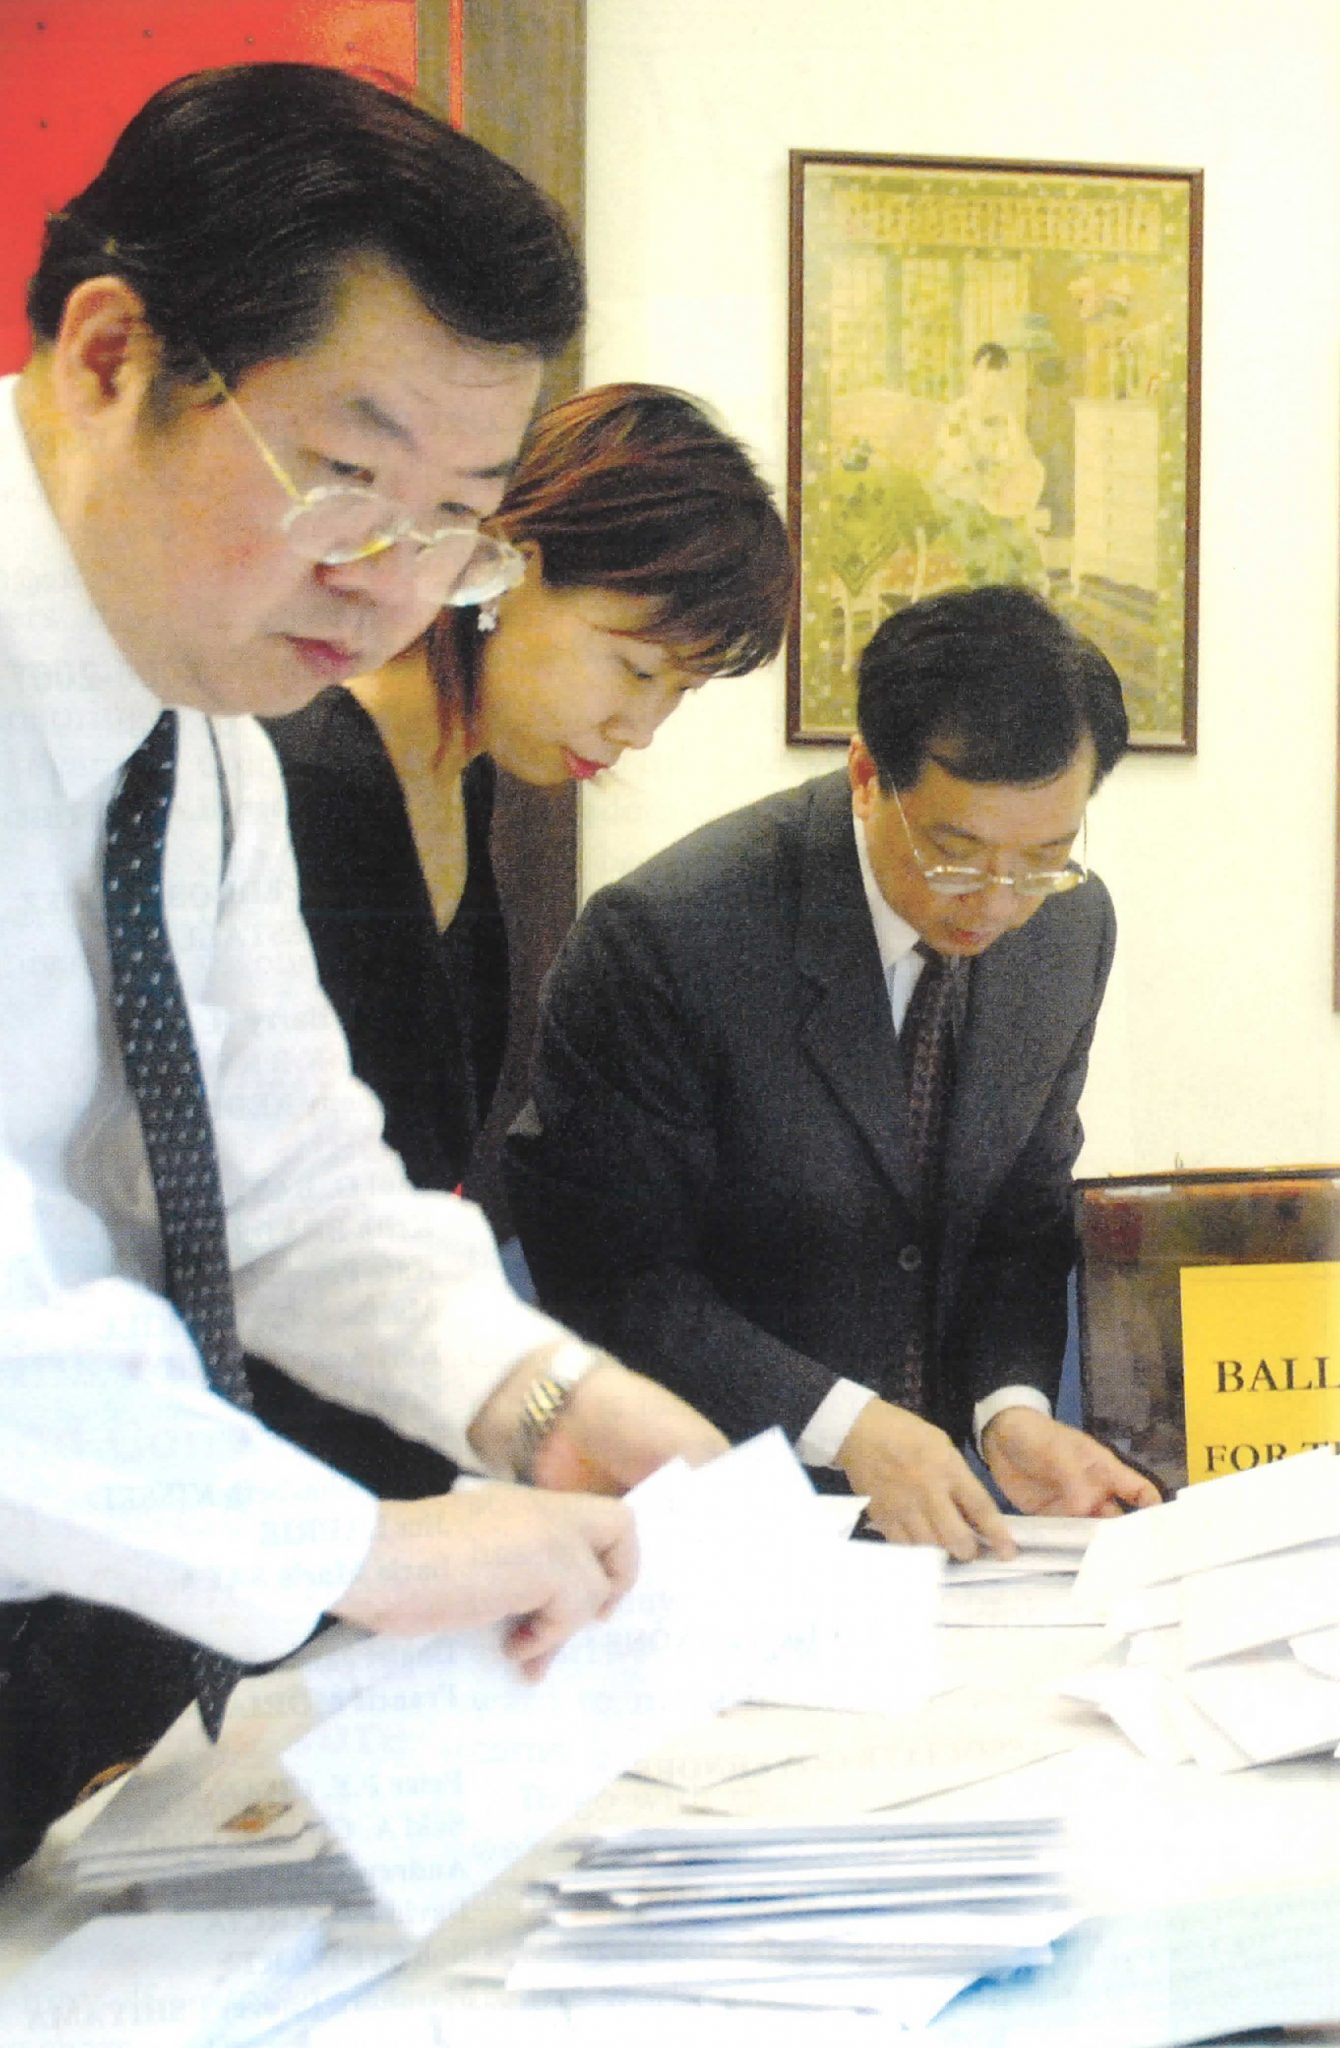 2006: Sorting the Board of Governor votes into categories. From left: Gilbert, Rosalia Ho, Michael Ho.